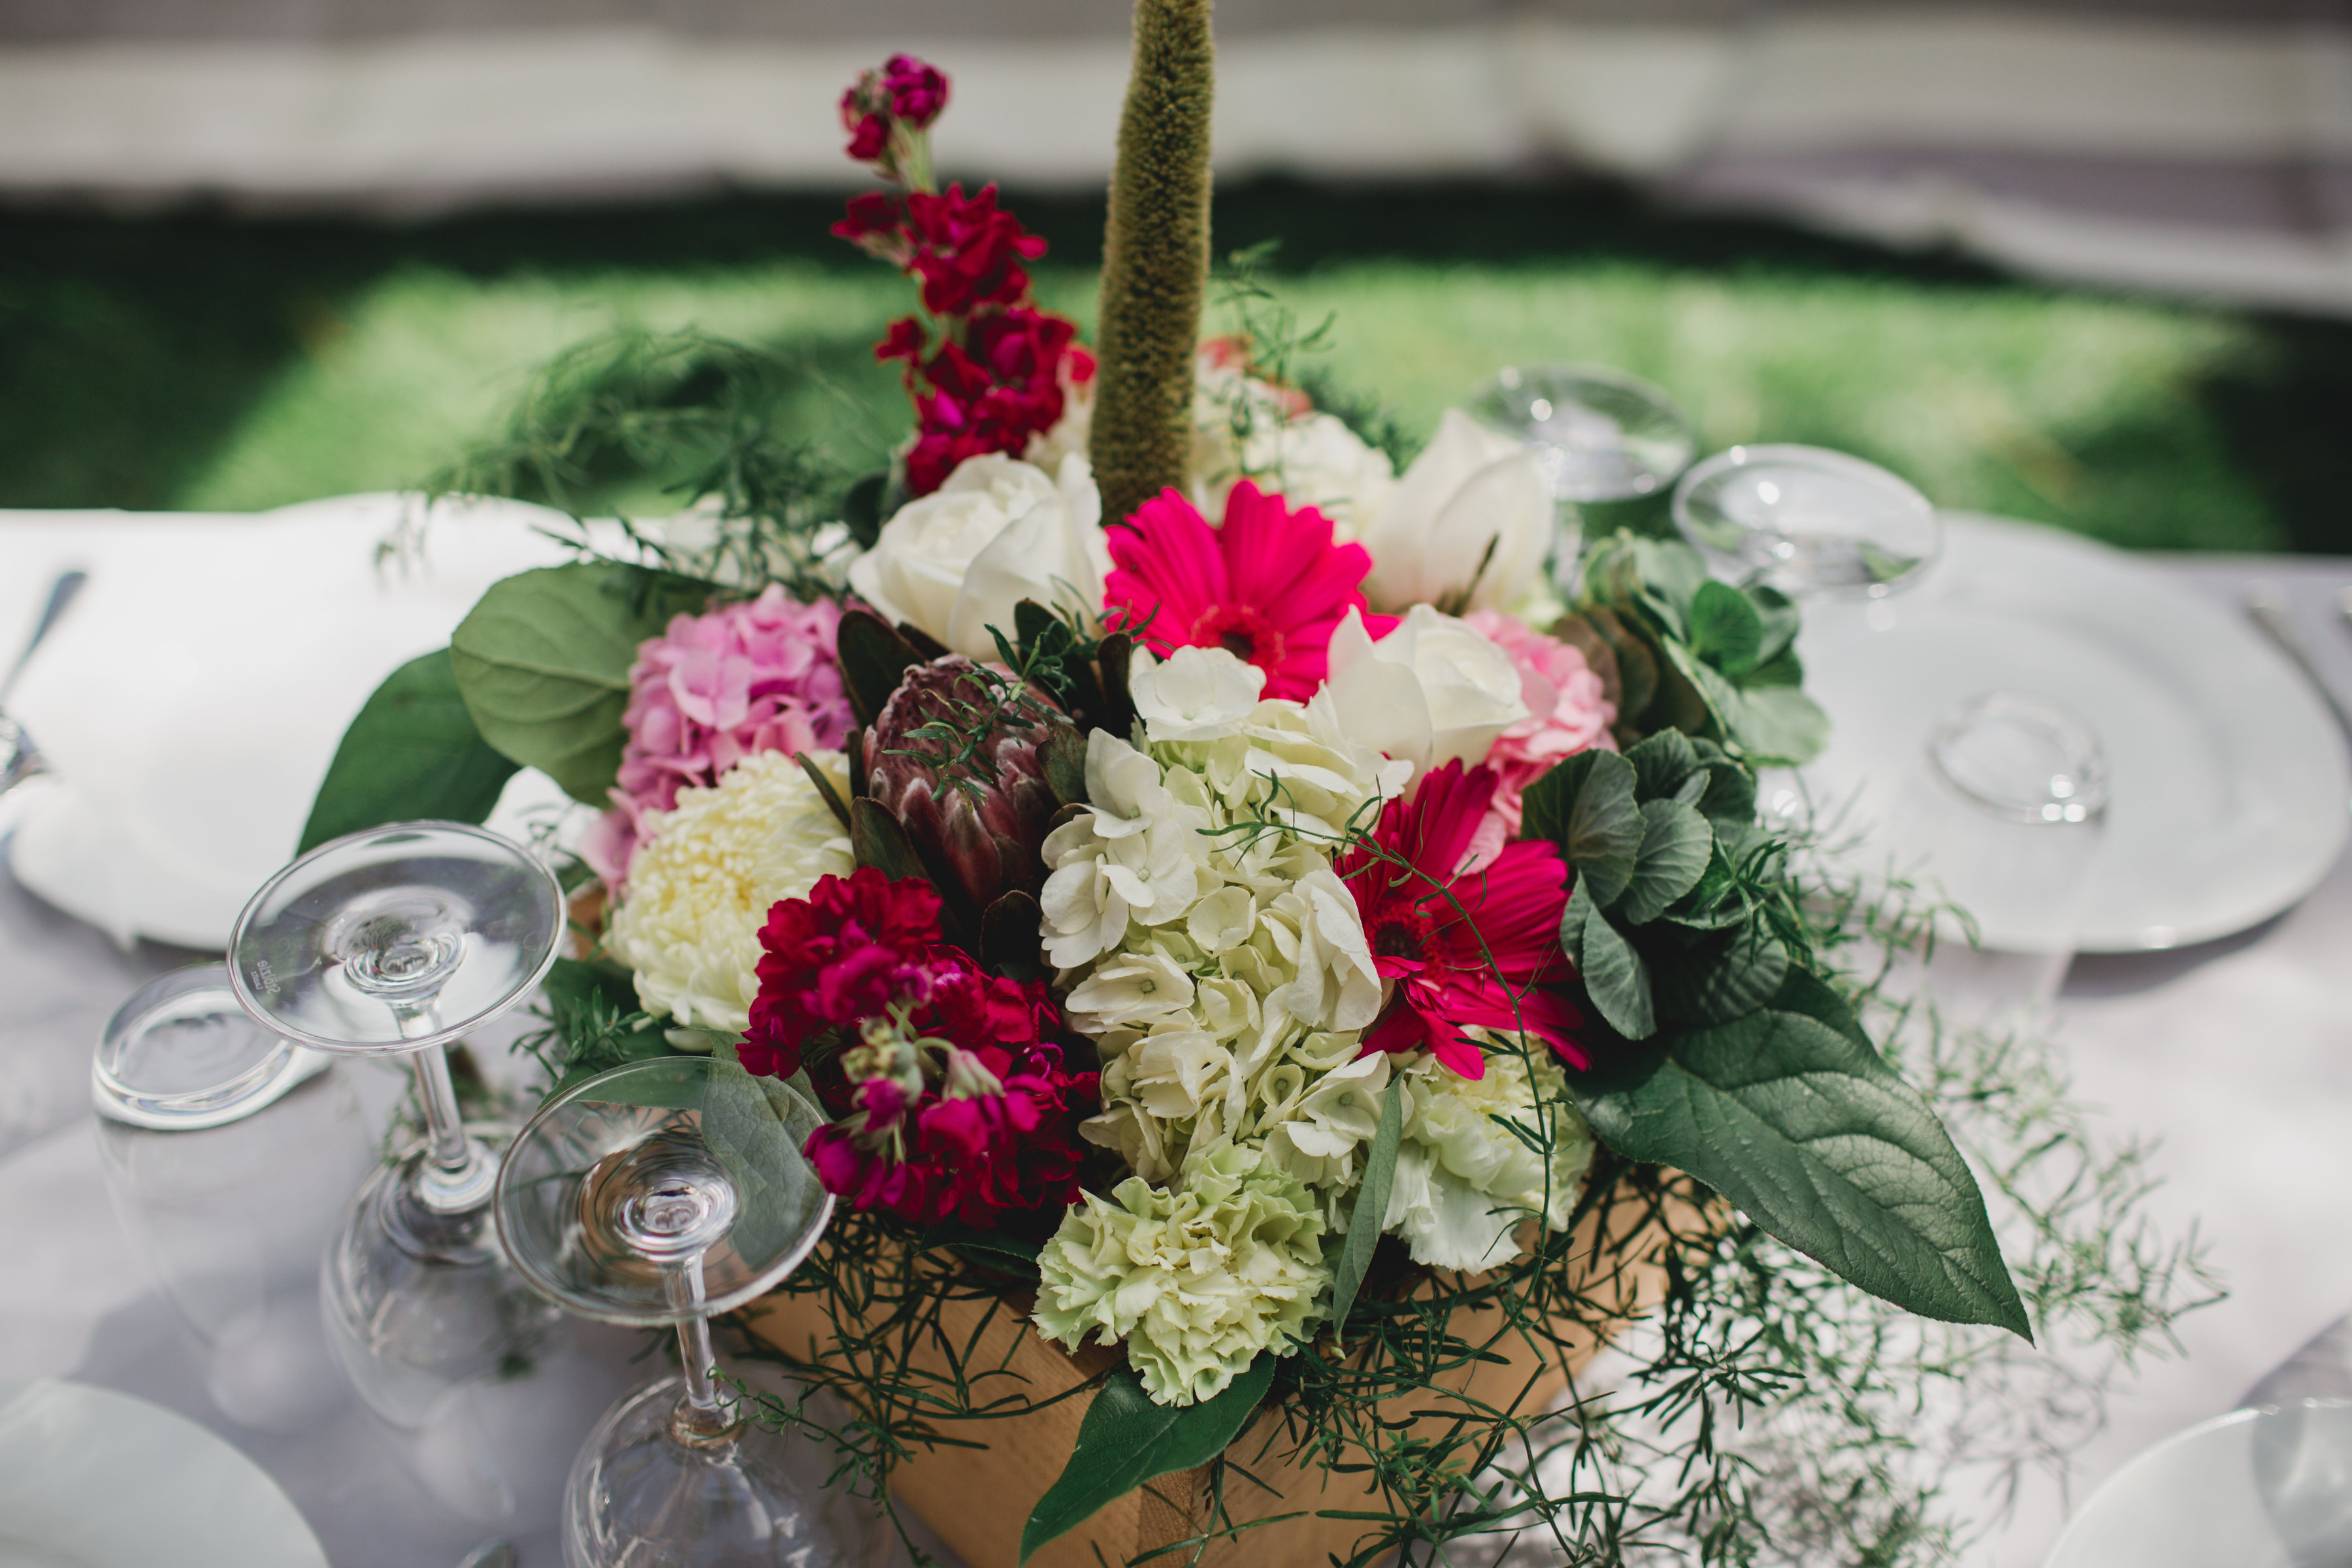 A_Floral_Affair_Gardnerville_Tahoe_Reno_Wedding_Florist_Reception_Centerpiece (11)